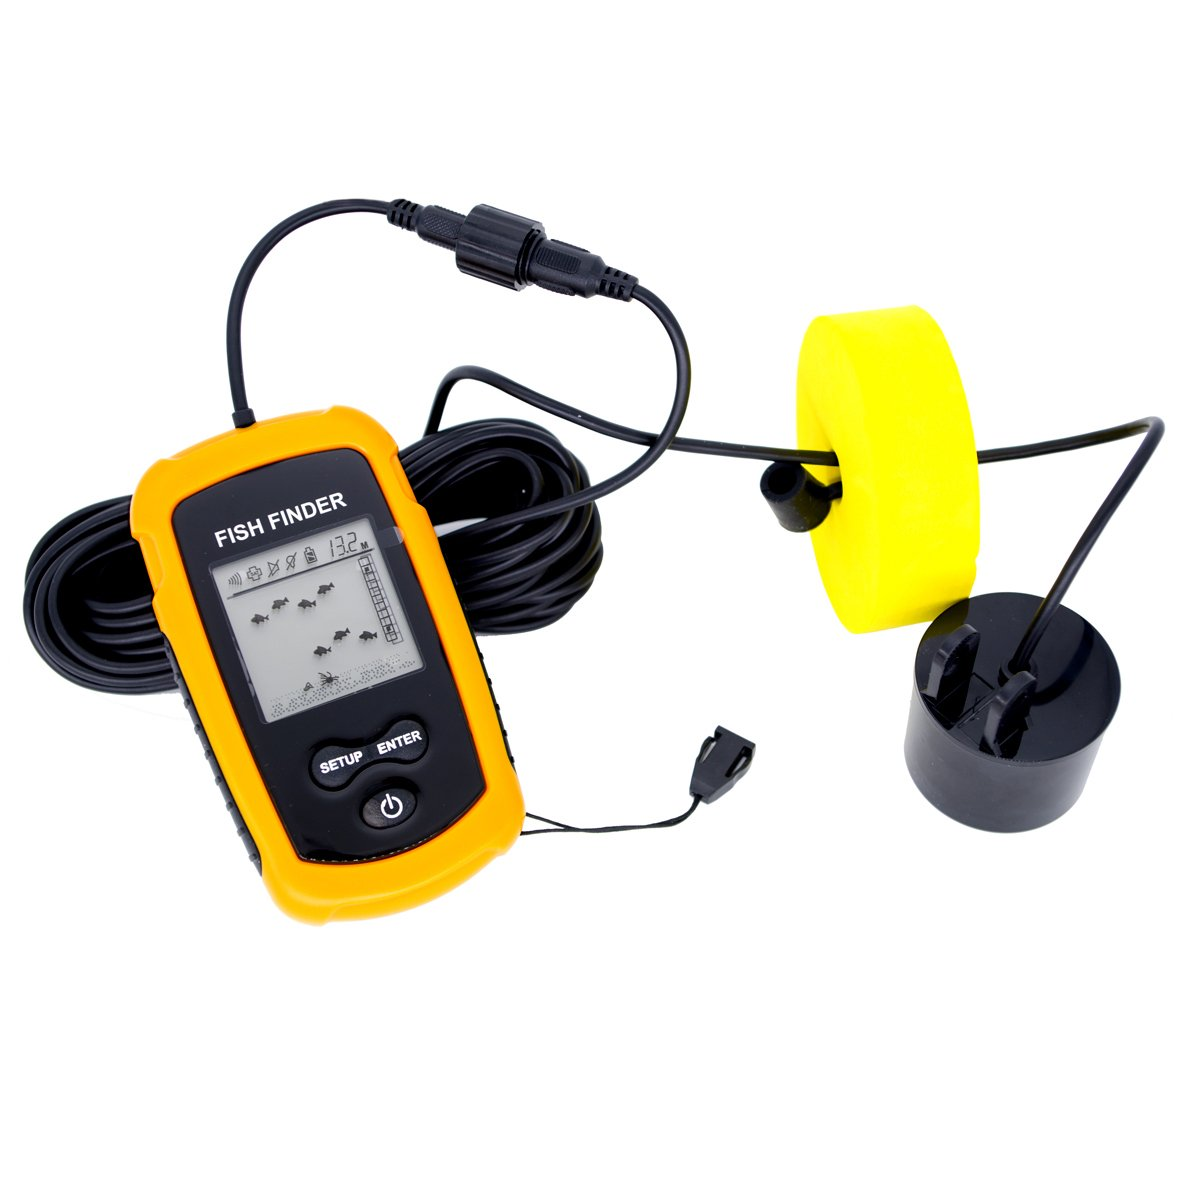 Venterior VT-FF001 Portable Fish Finder, Fishfinder with Wired Sonar Sensor Transducer and LCD Display by Venterior (Image #2)